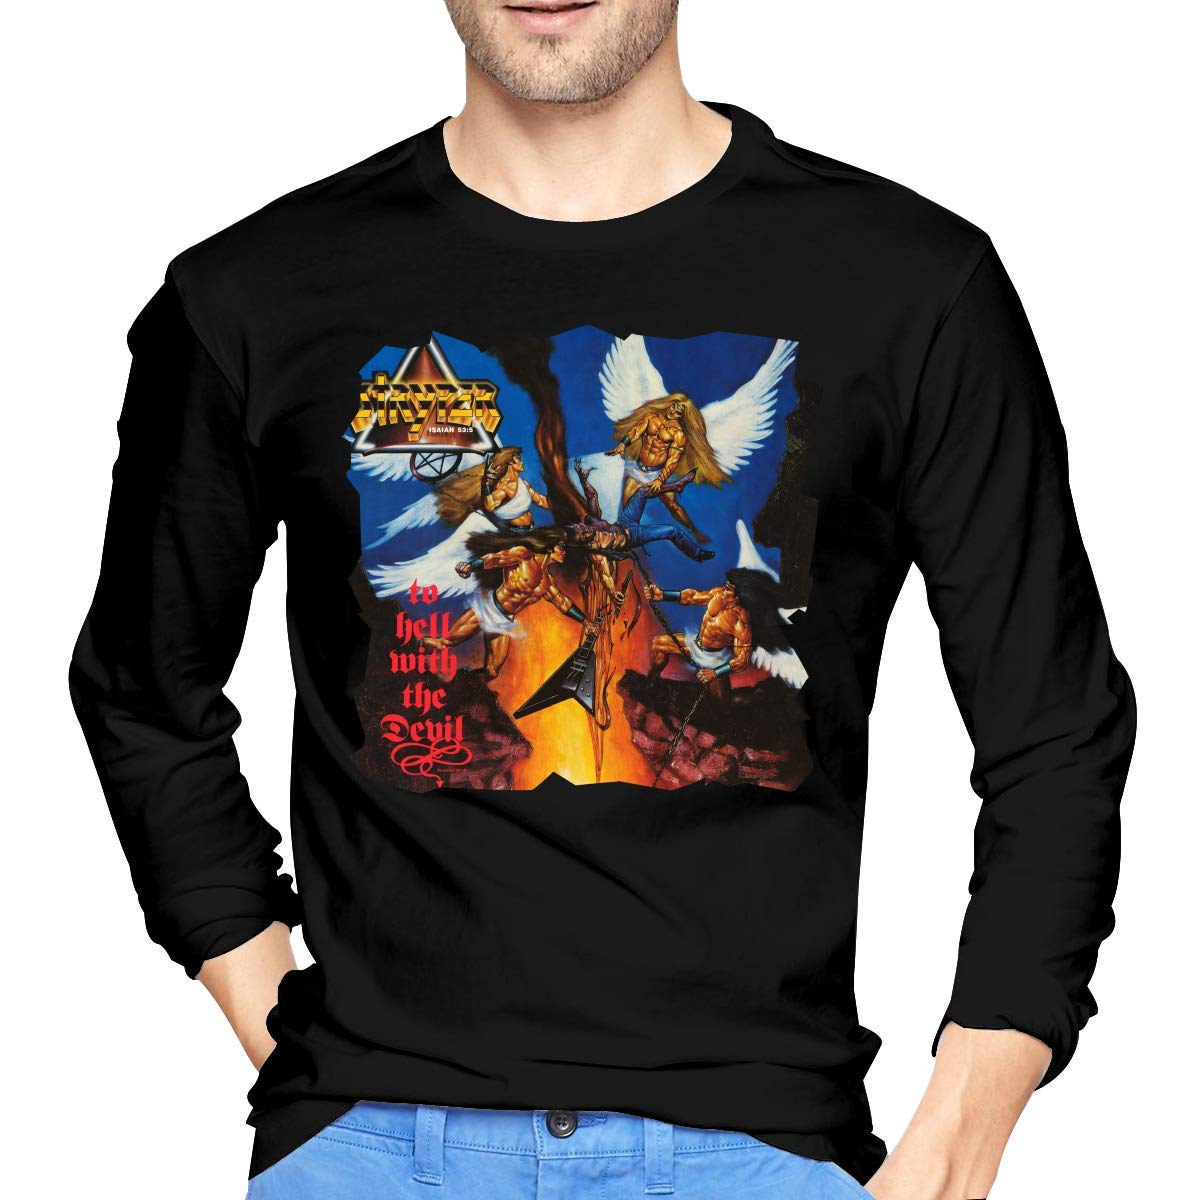 Fssatung S Stryper To Hell With The Devil T Shirts Black